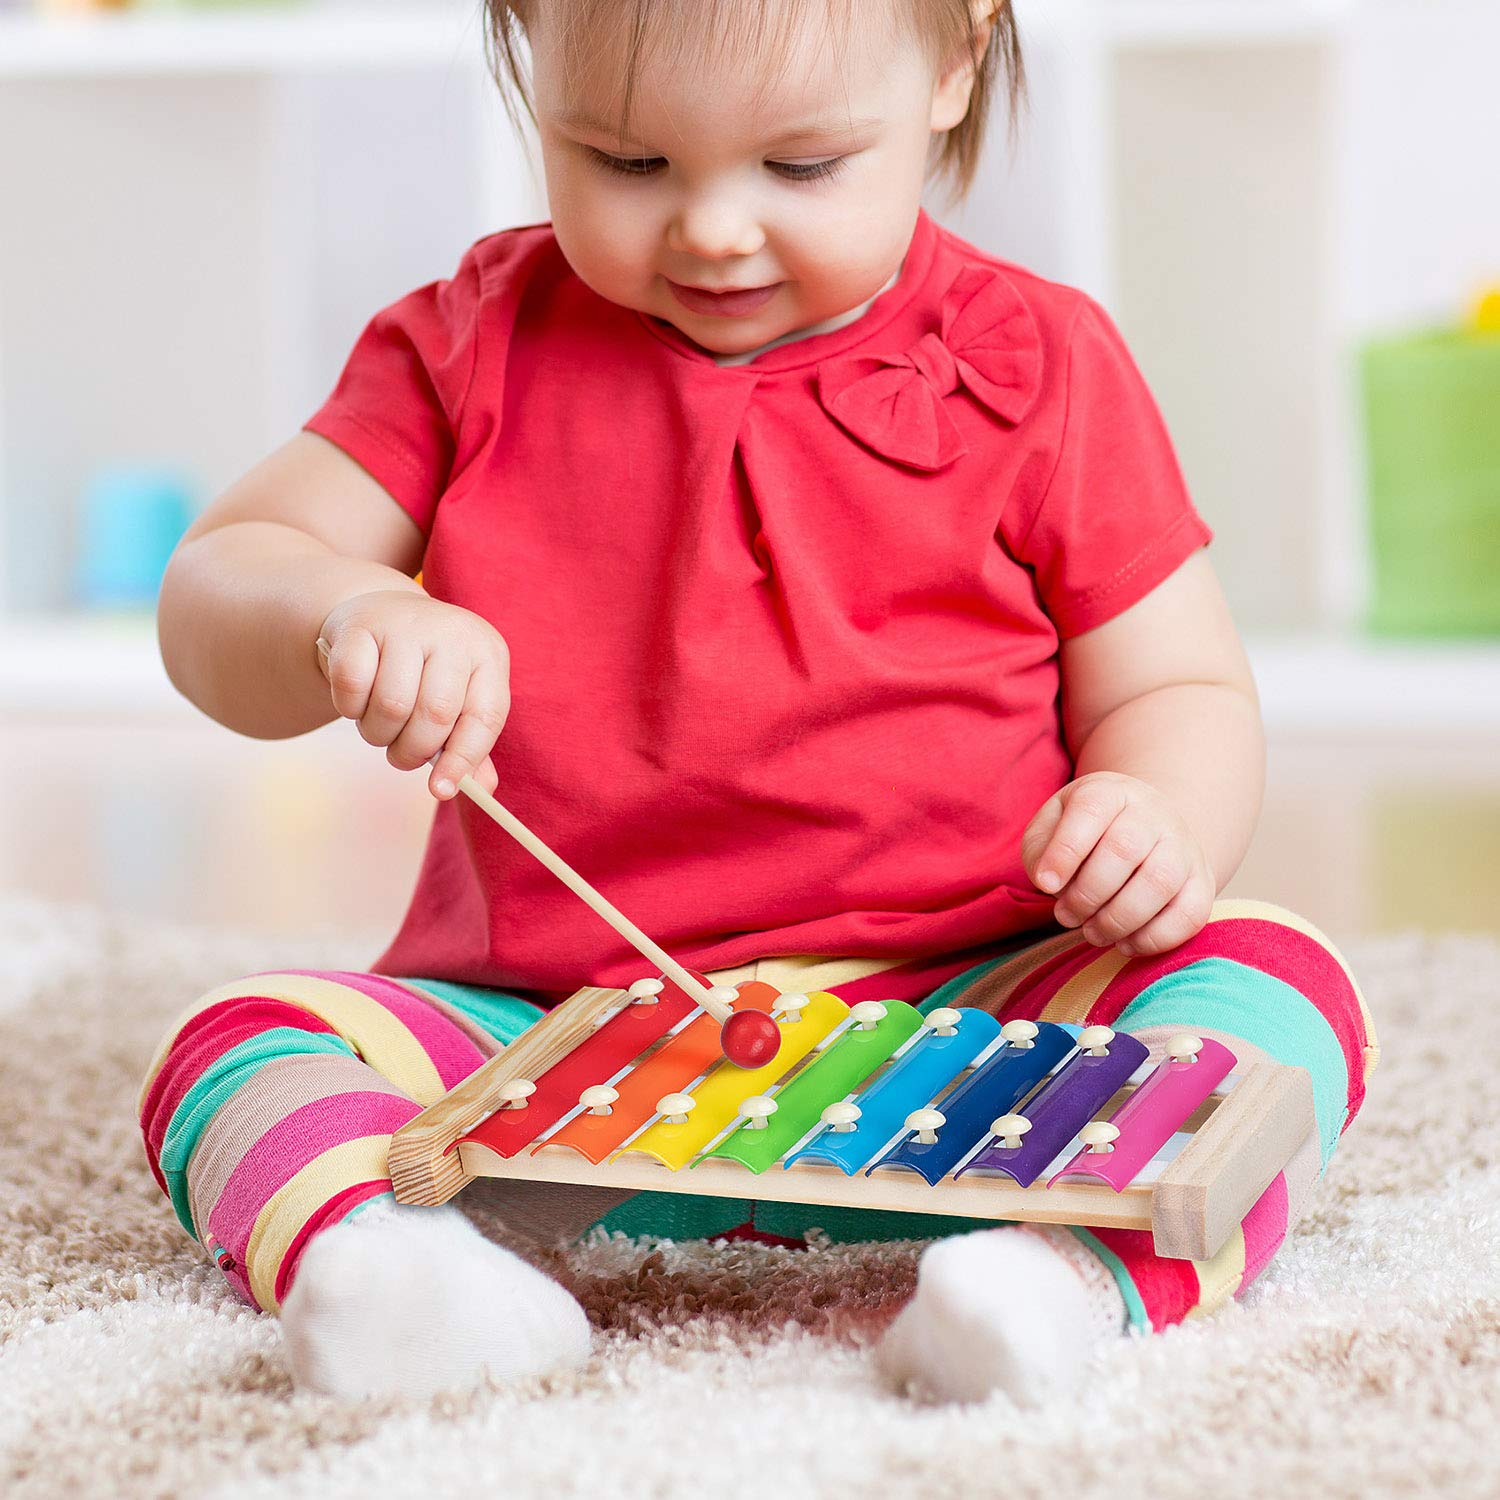 Xylophone for Kids Set Of Three Instrument Toys With Two Xylophone,One caterpillar toy-JiangChuan(2019 New Design),Best Birthday/Holiday Gift For Children's with Two Safe Mallets,Free Music socure by JiangChuan (Image #4)